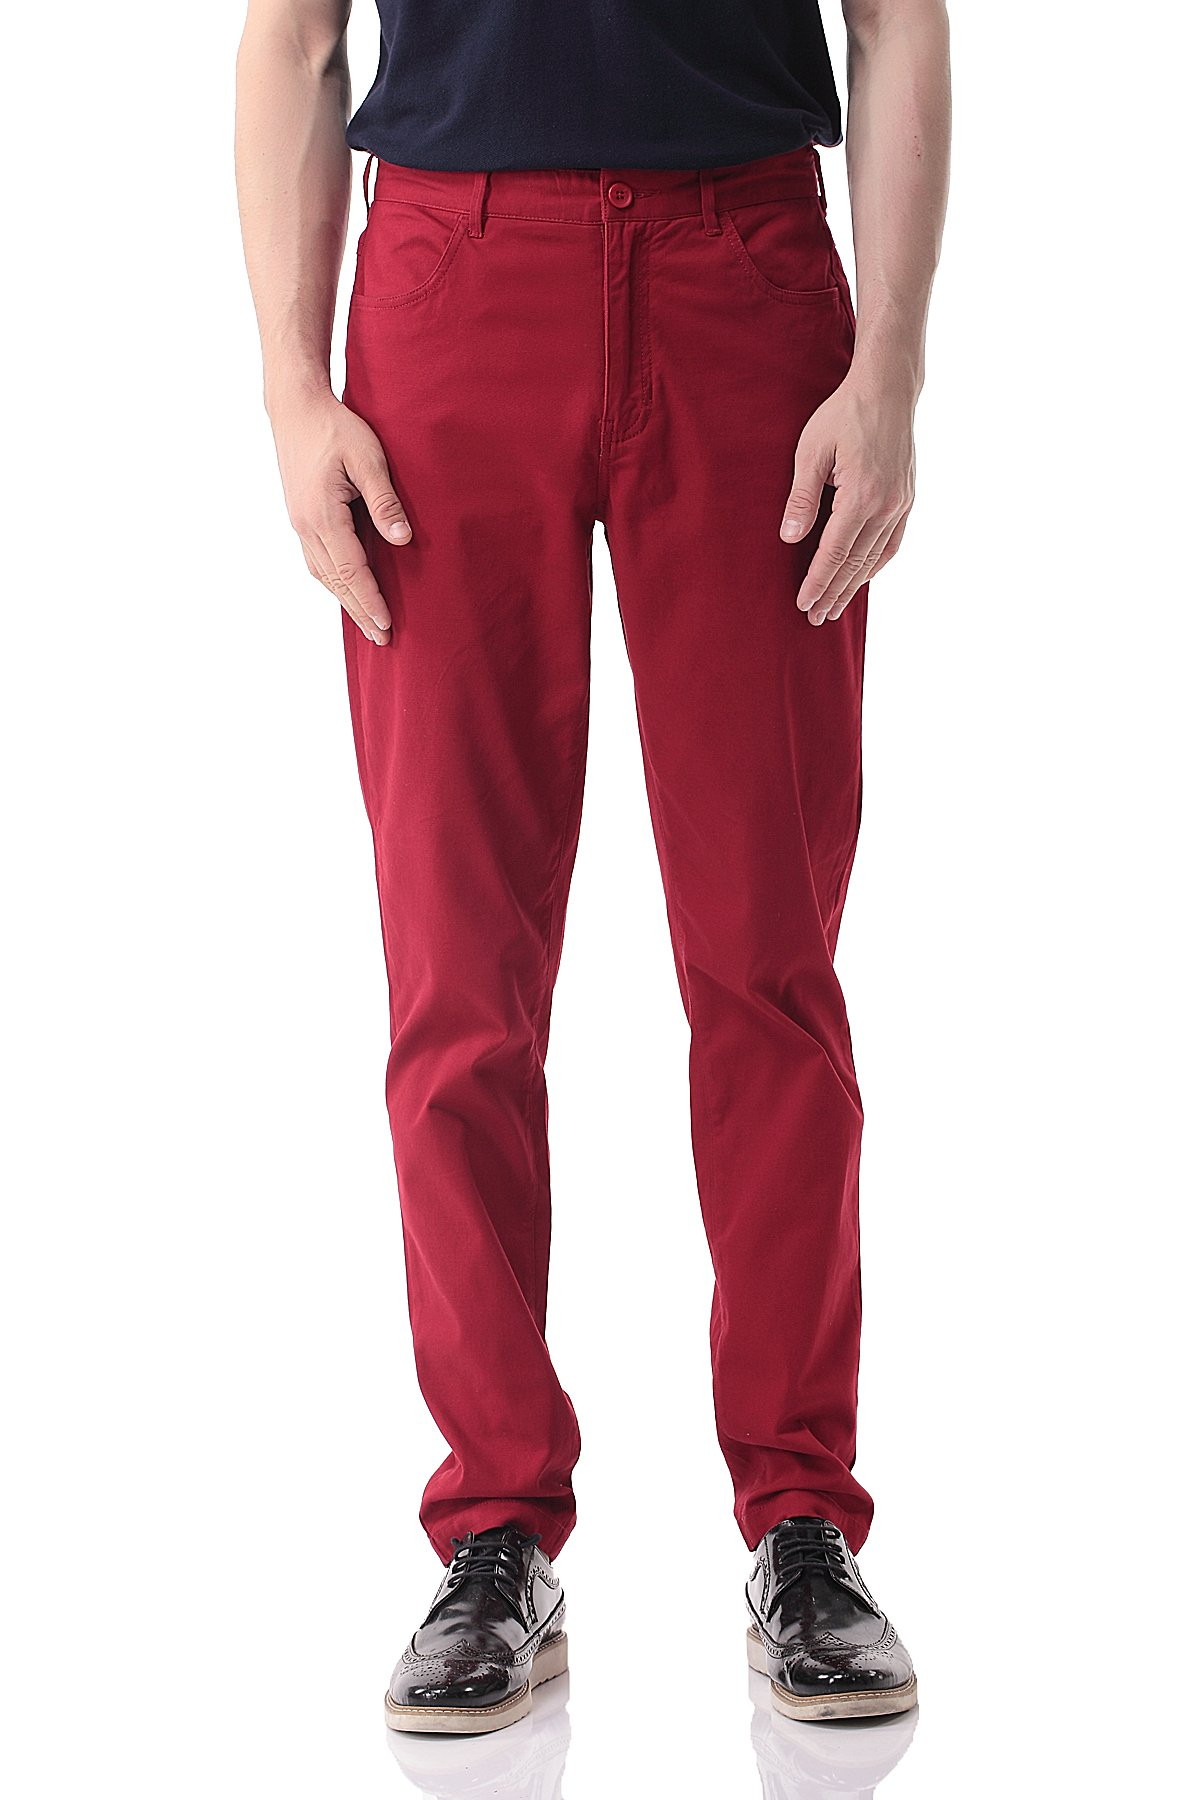 Pau1Hami1ton PH-17 Men's Slim Stretchy Casual Chinos Pants Tapered Work Weekend Office(32,Red)